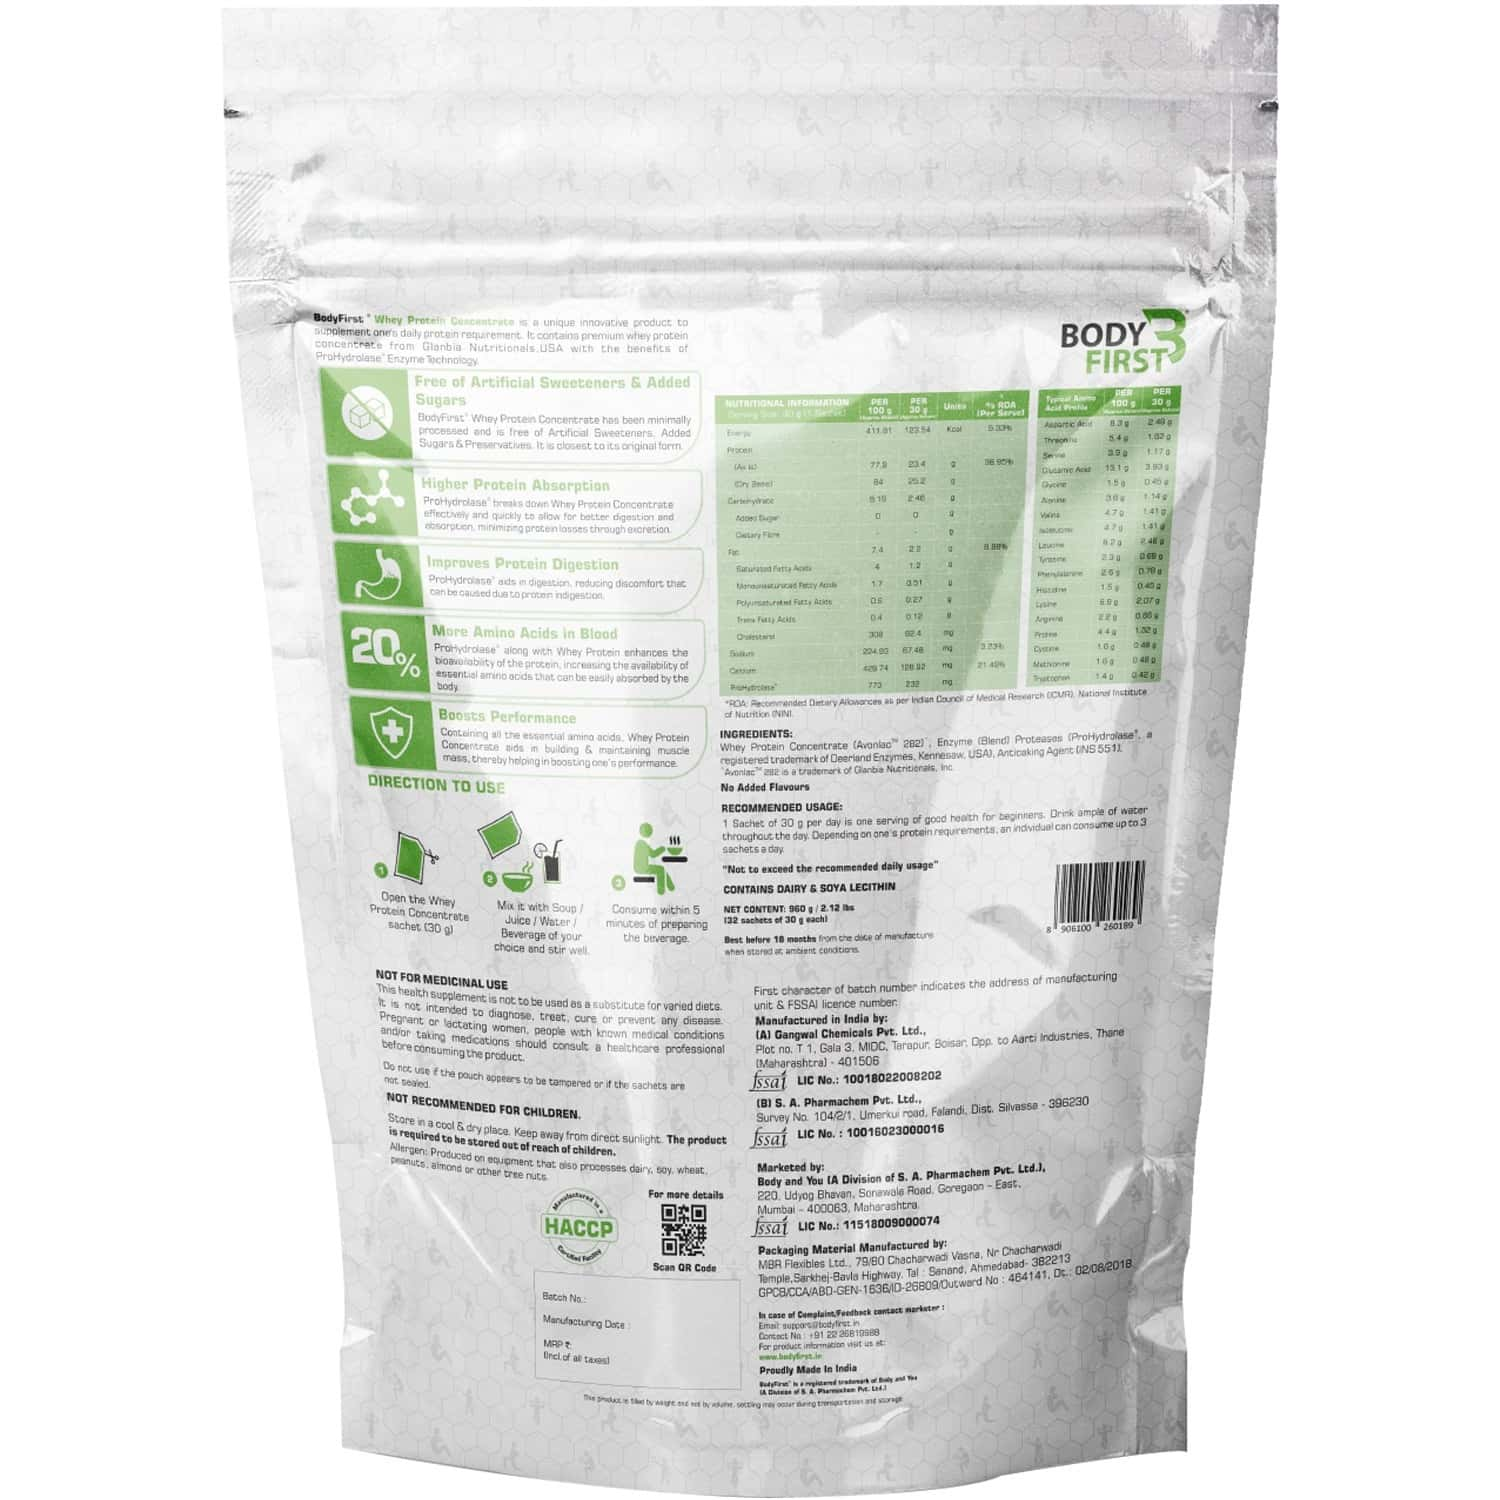 Bodyfirst Whey Protein Hydro/concprohydrolase Unflavoured